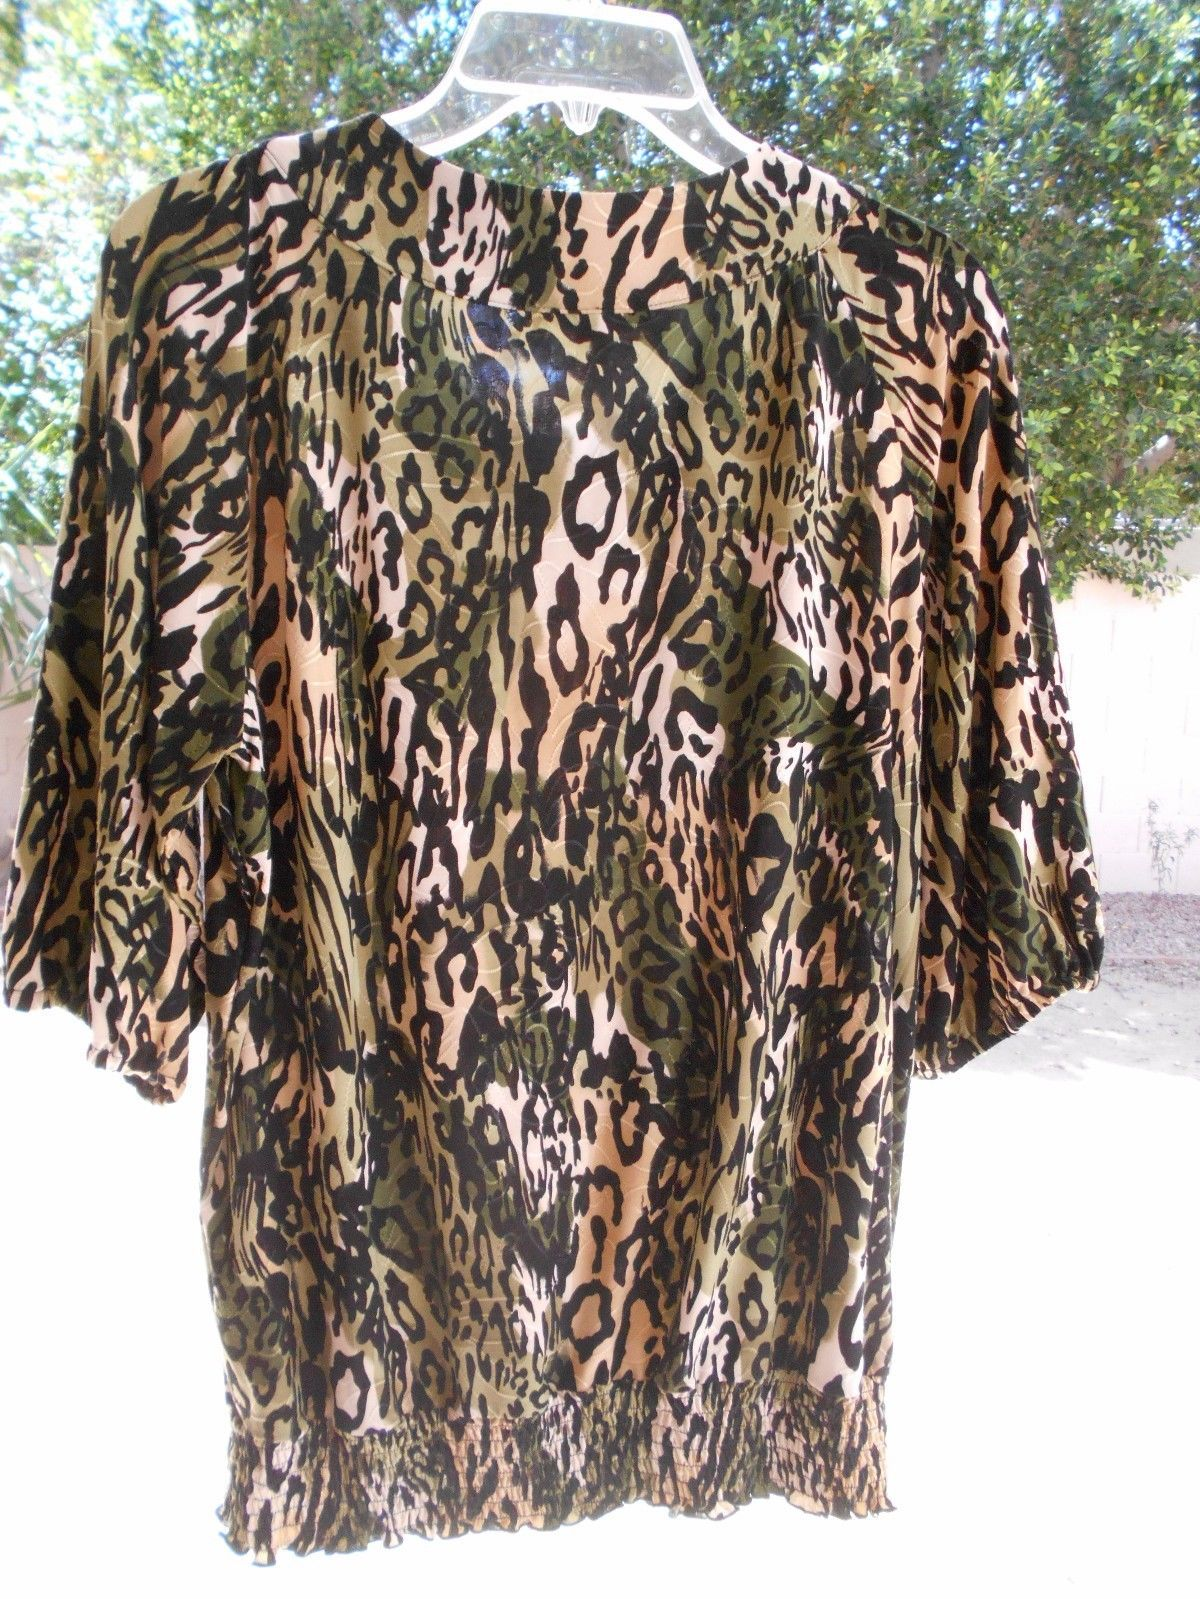 JM Collection Black BEADED ANIMAL PRINT SIZE MEDIUM Short Sleeve Blouse BANDED